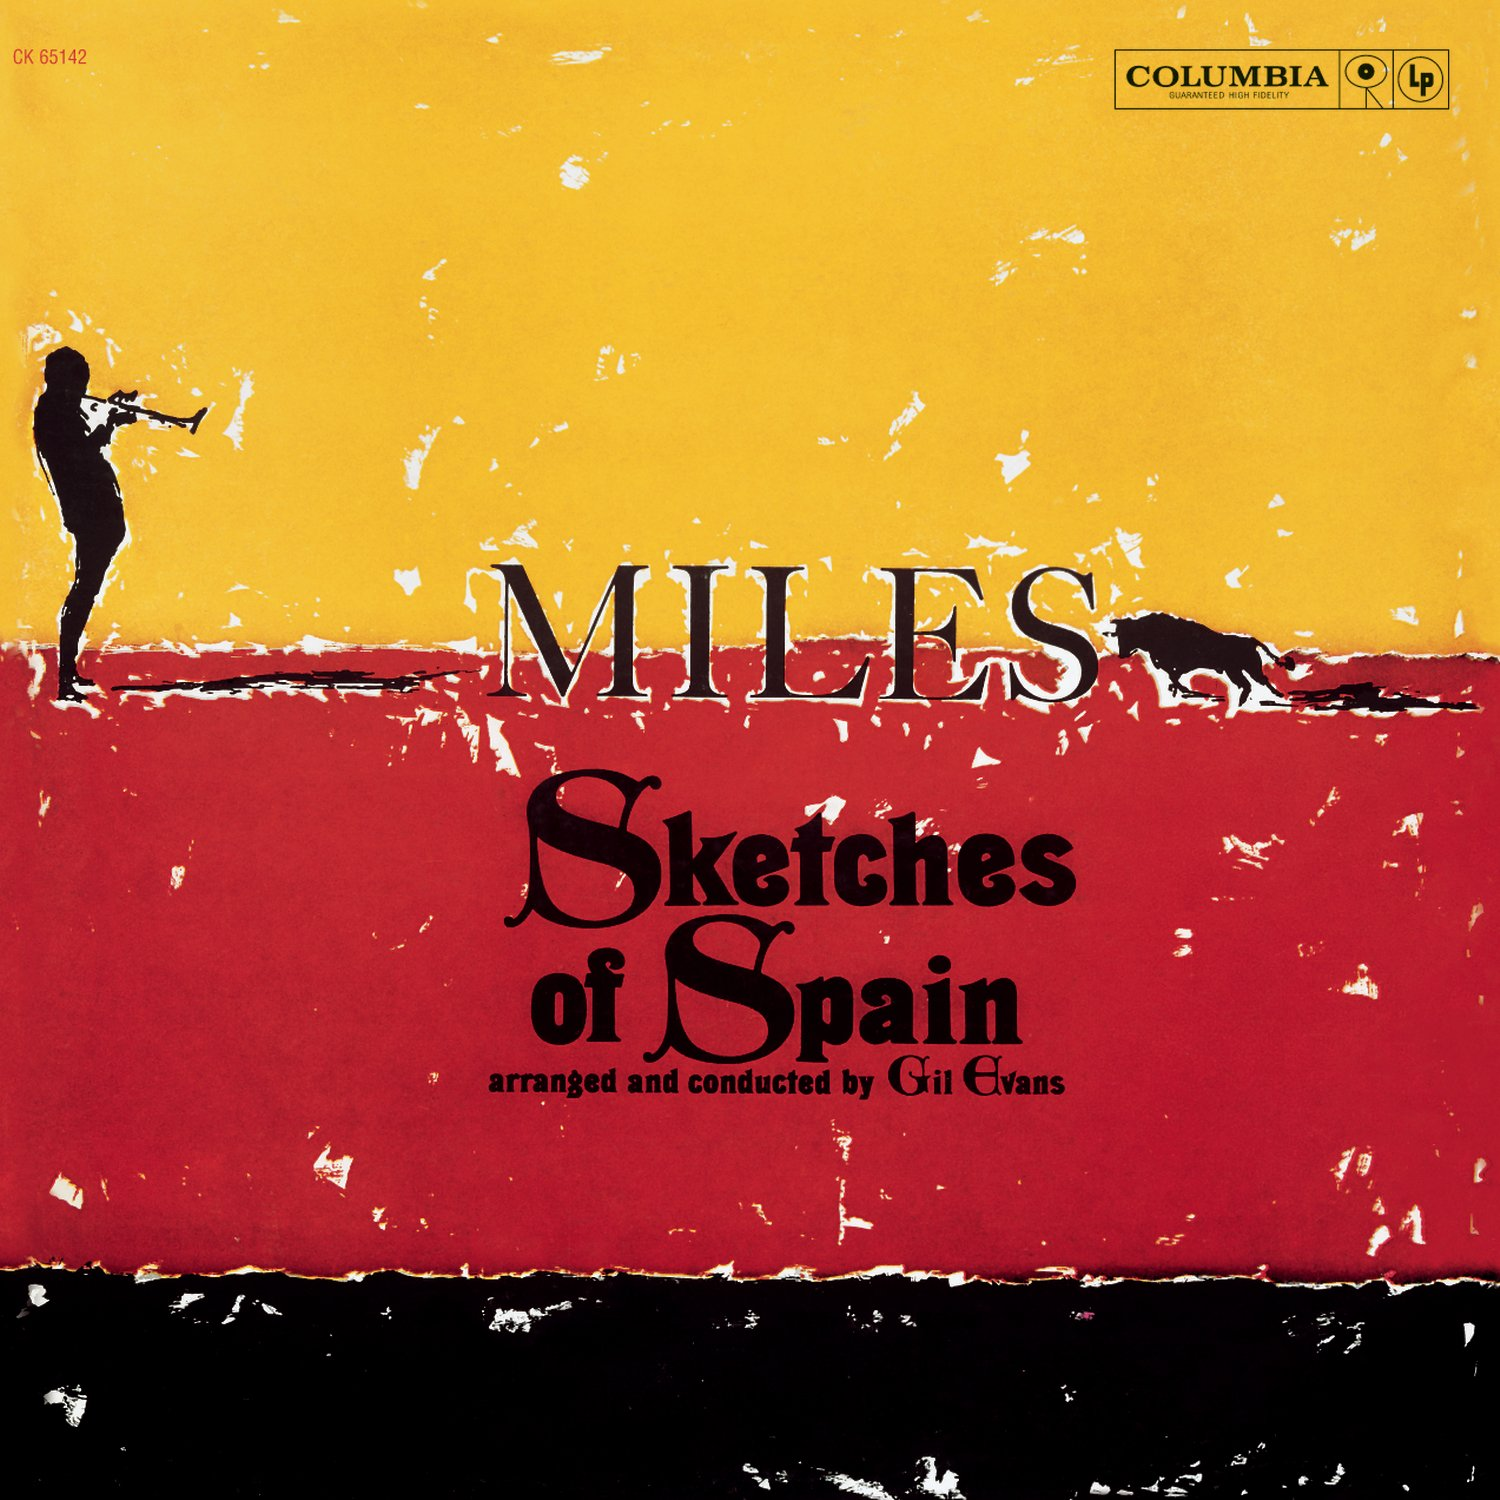 Bilderesultat for sketches of spain